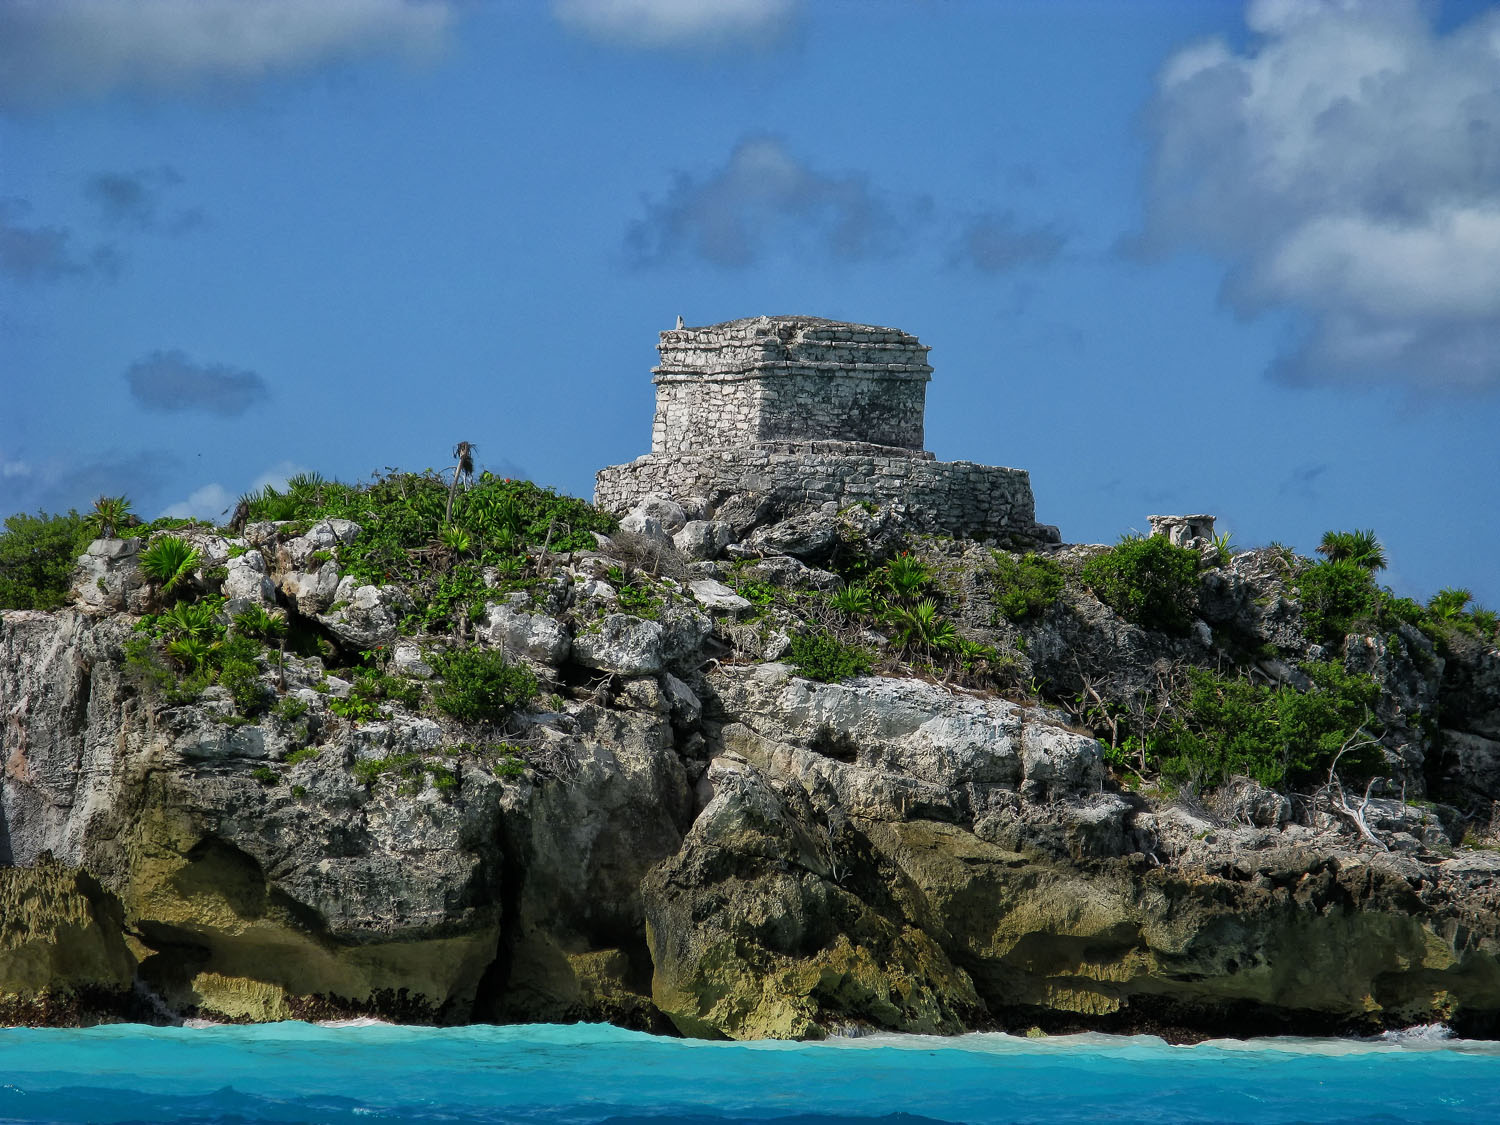 The God of Wind Temple anchors to the Caribbean Sea coastline.